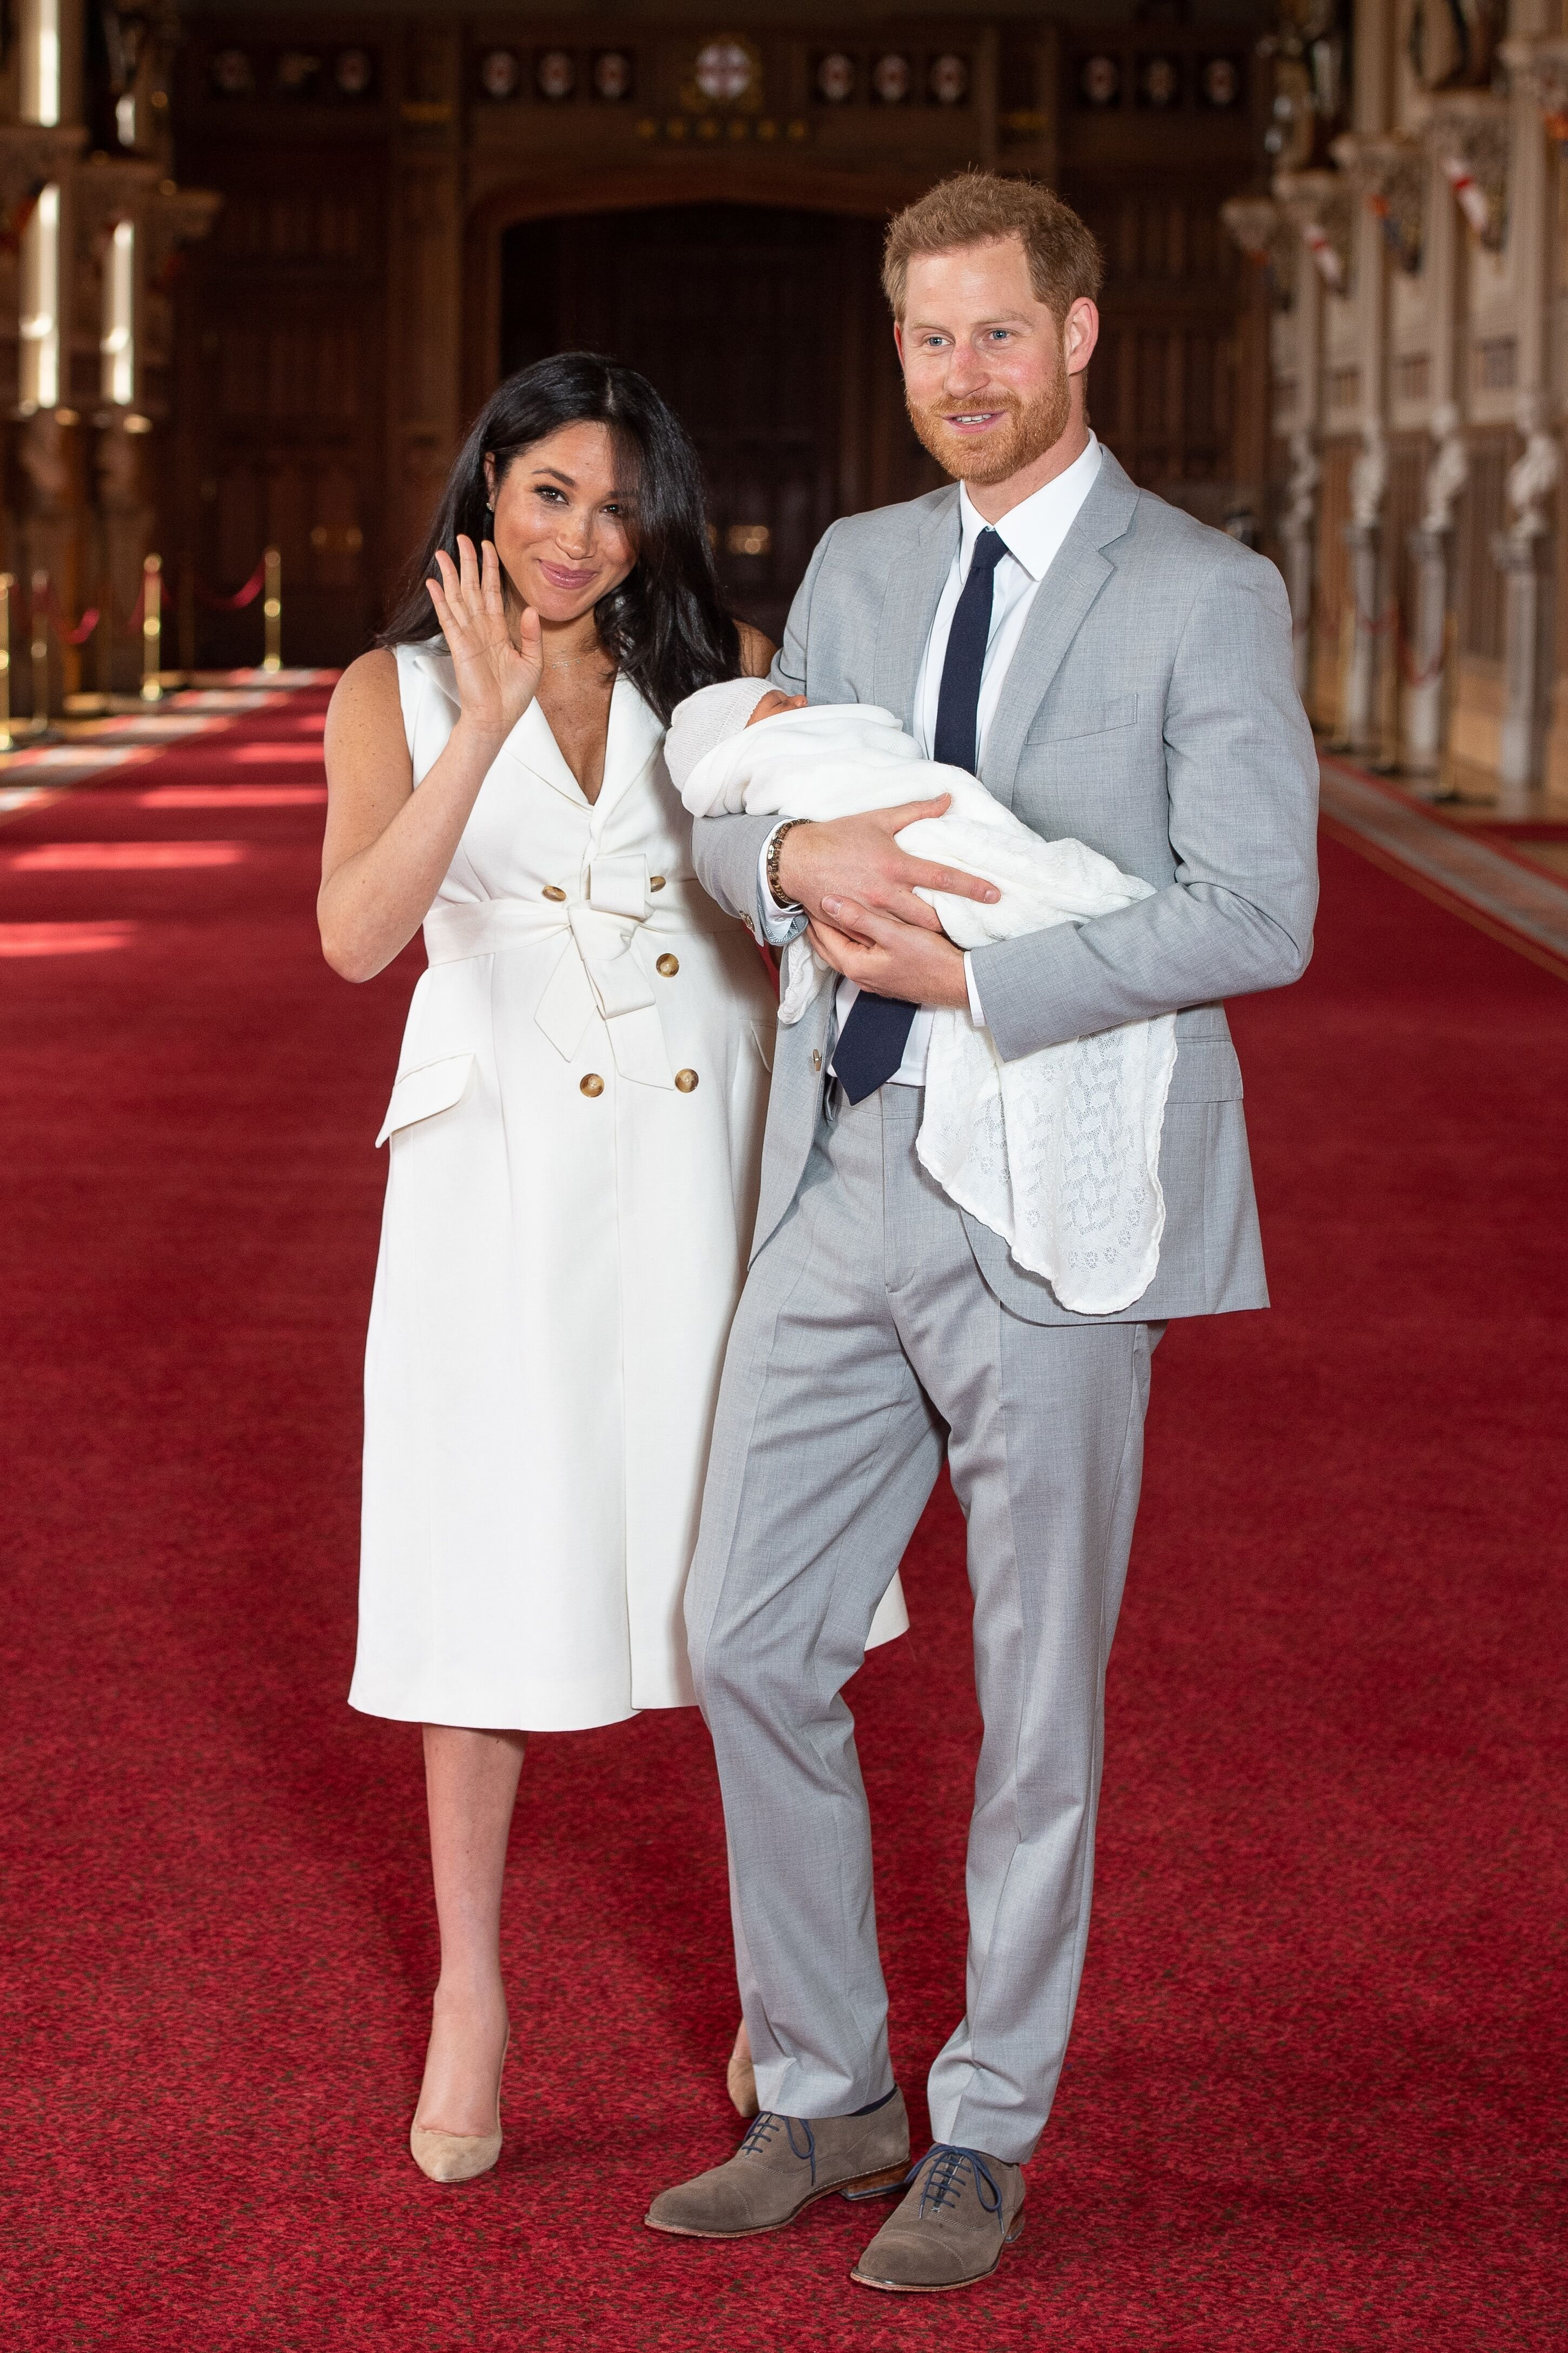 The Duke and Duchess of Sussex with Baby Archie | Source: Getty Images/GlobalImagesUkraine